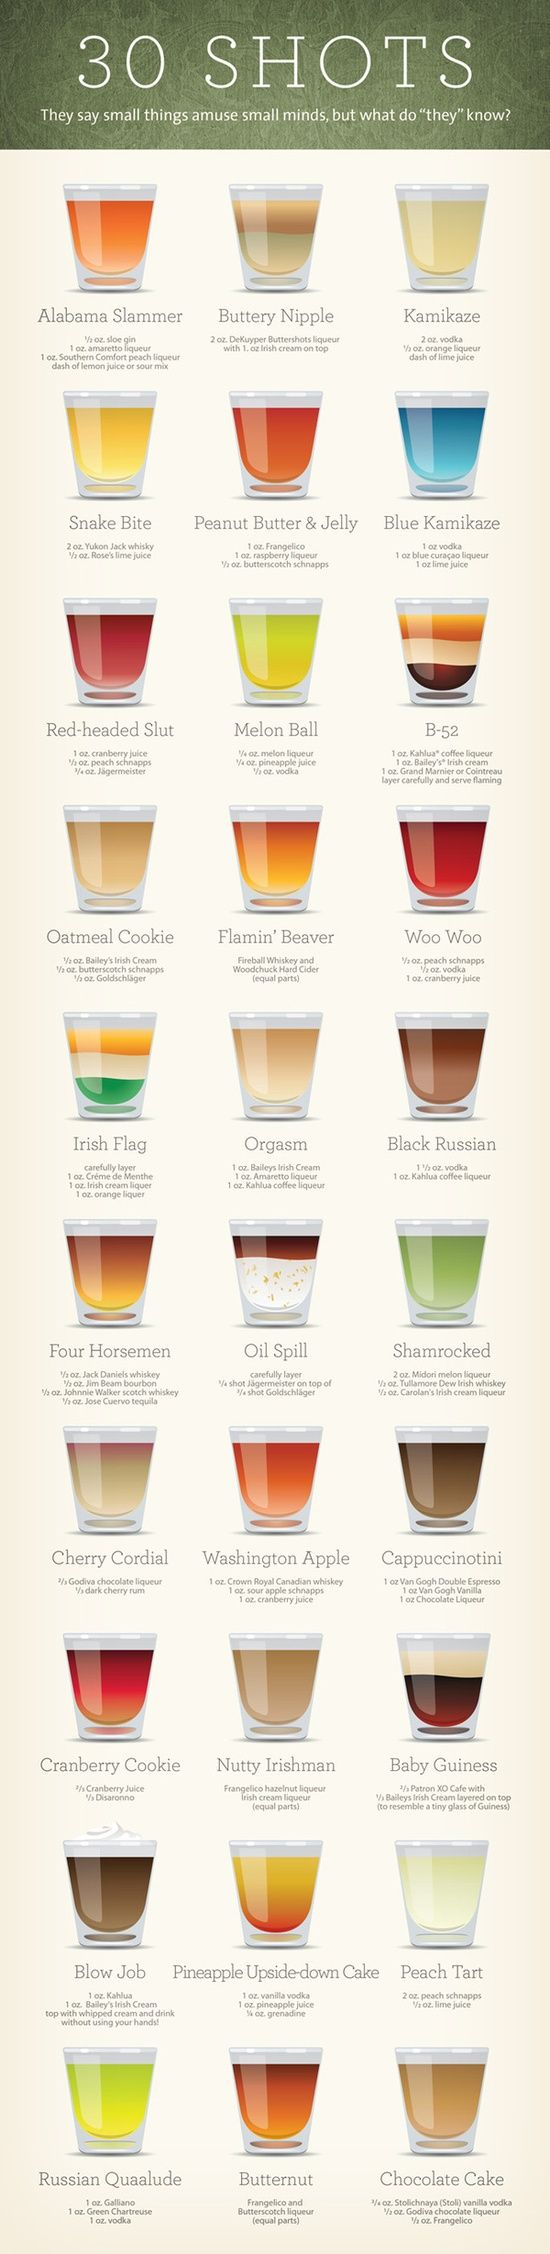 30 shots. I'll have one of each, please